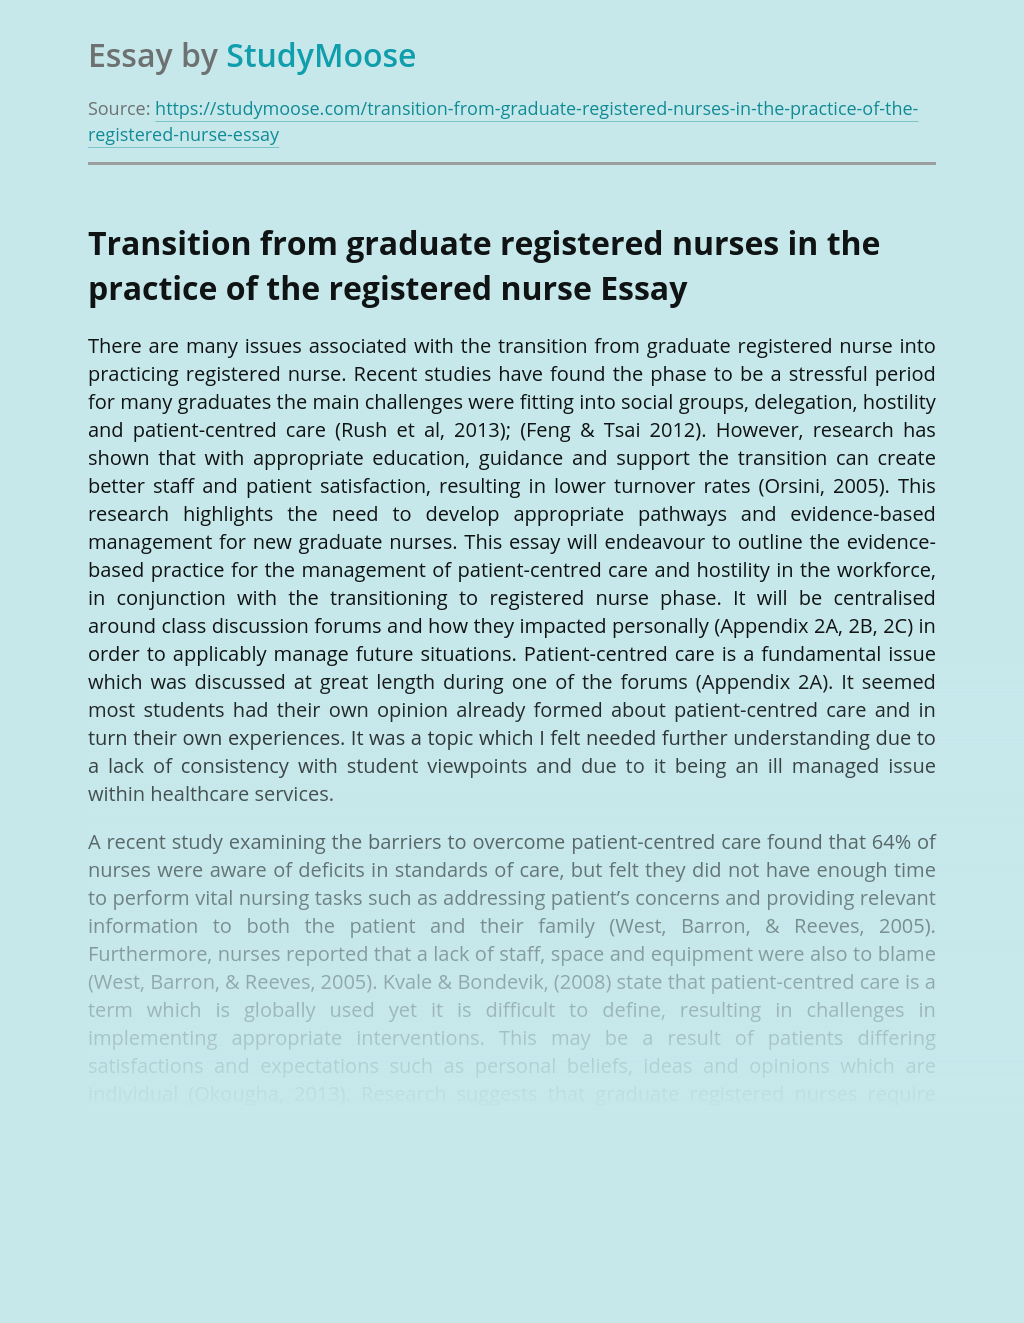 Transition from graduate registered nurses in the practice of the registered nurse